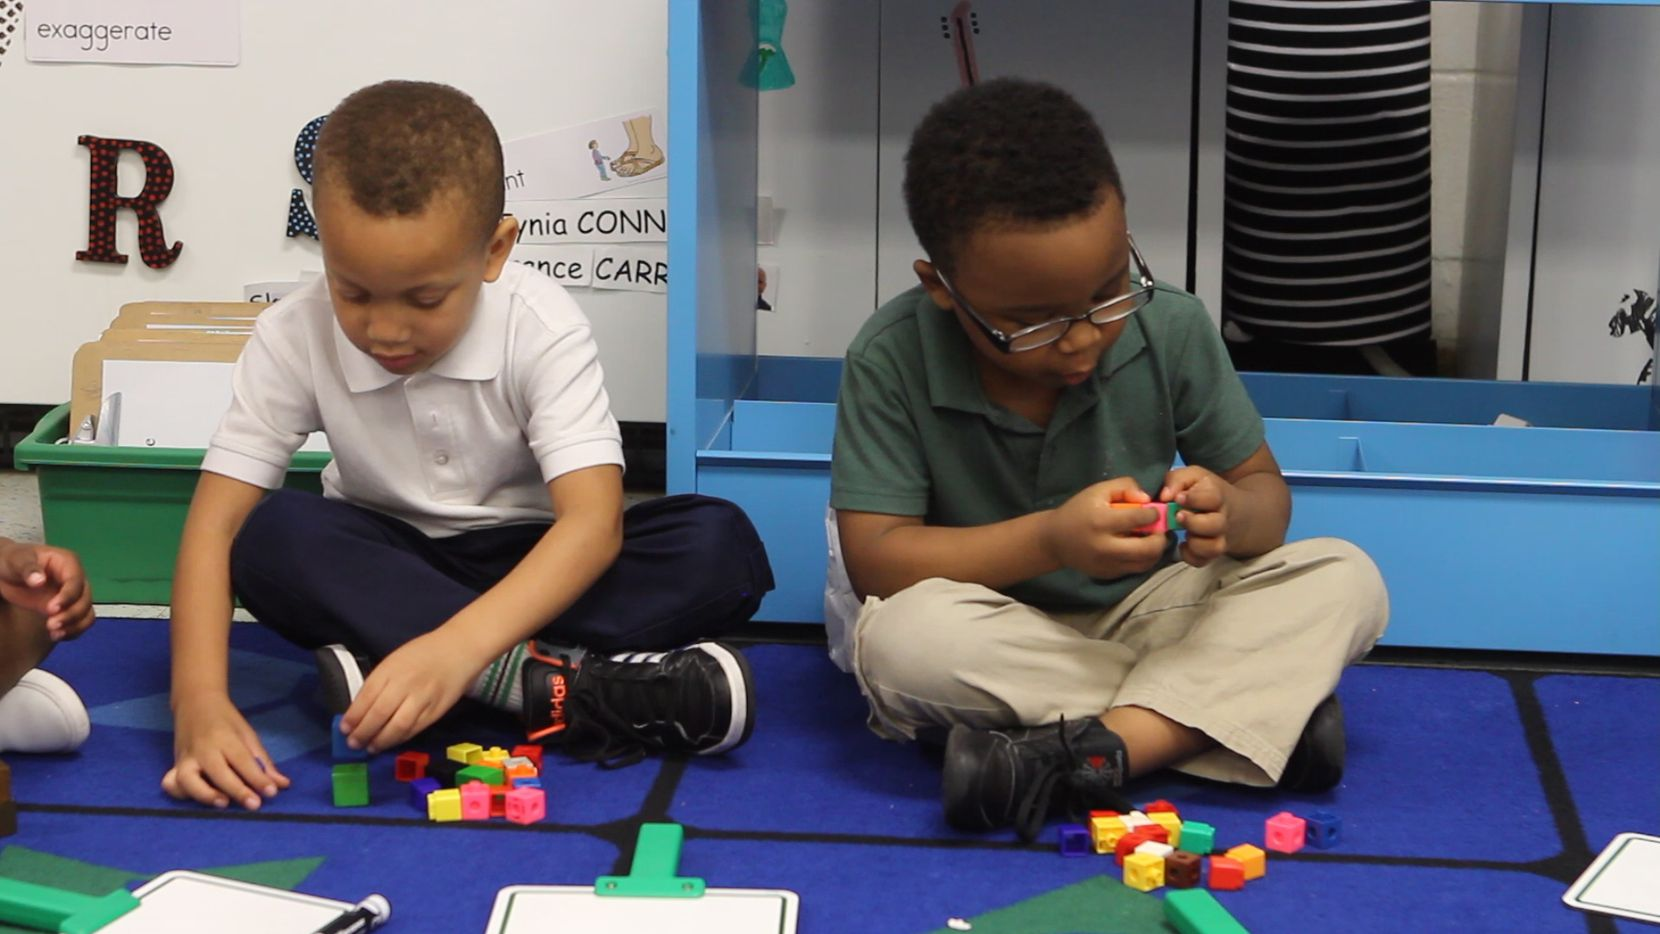 Children learn through play at Harllee Early Childhood Center.